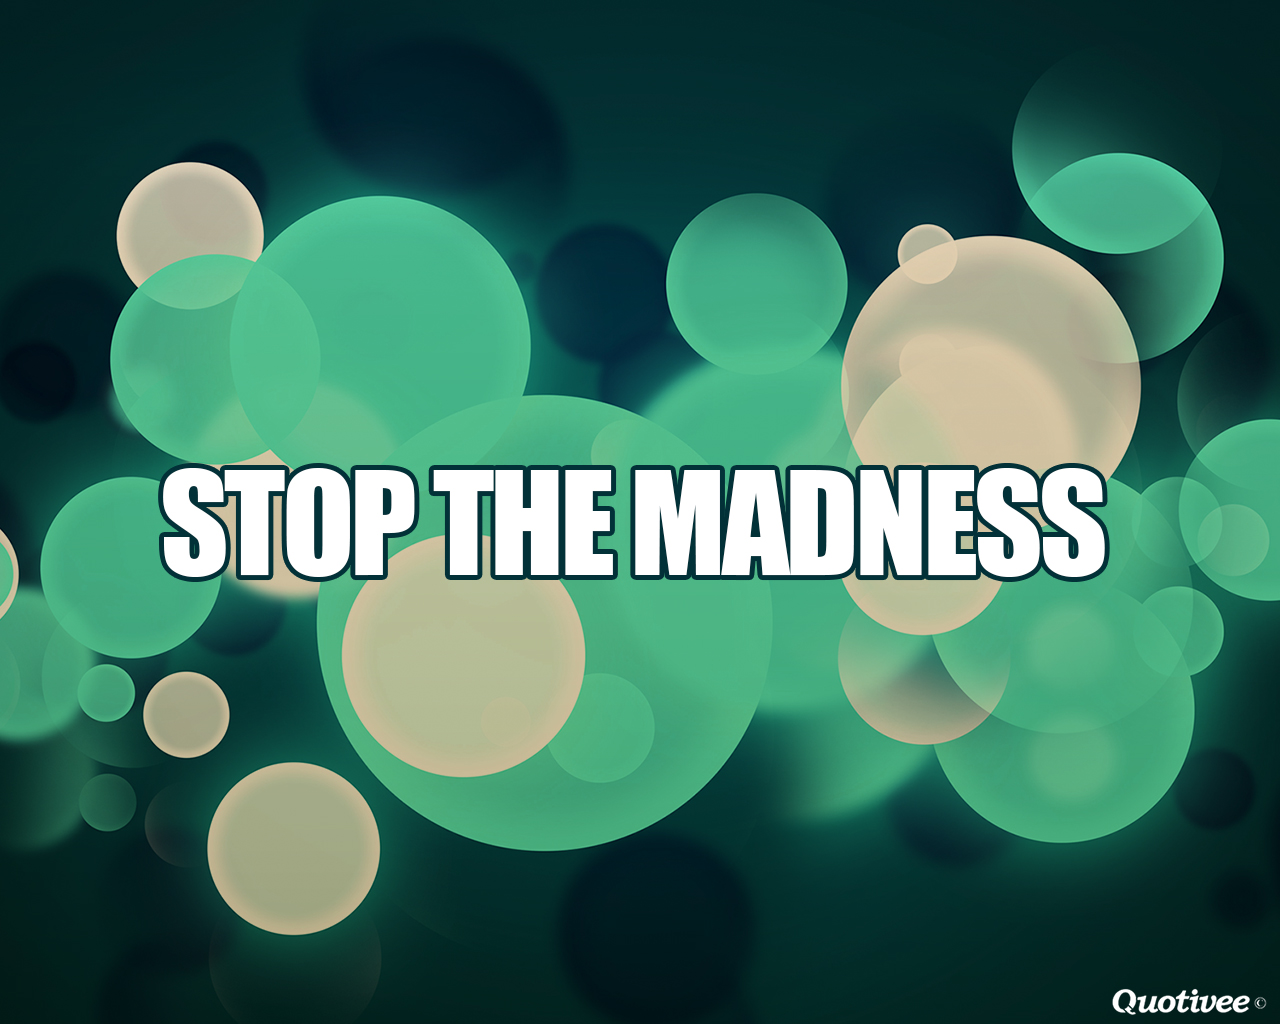 quotivee_1280x1024_0002_stop the madness